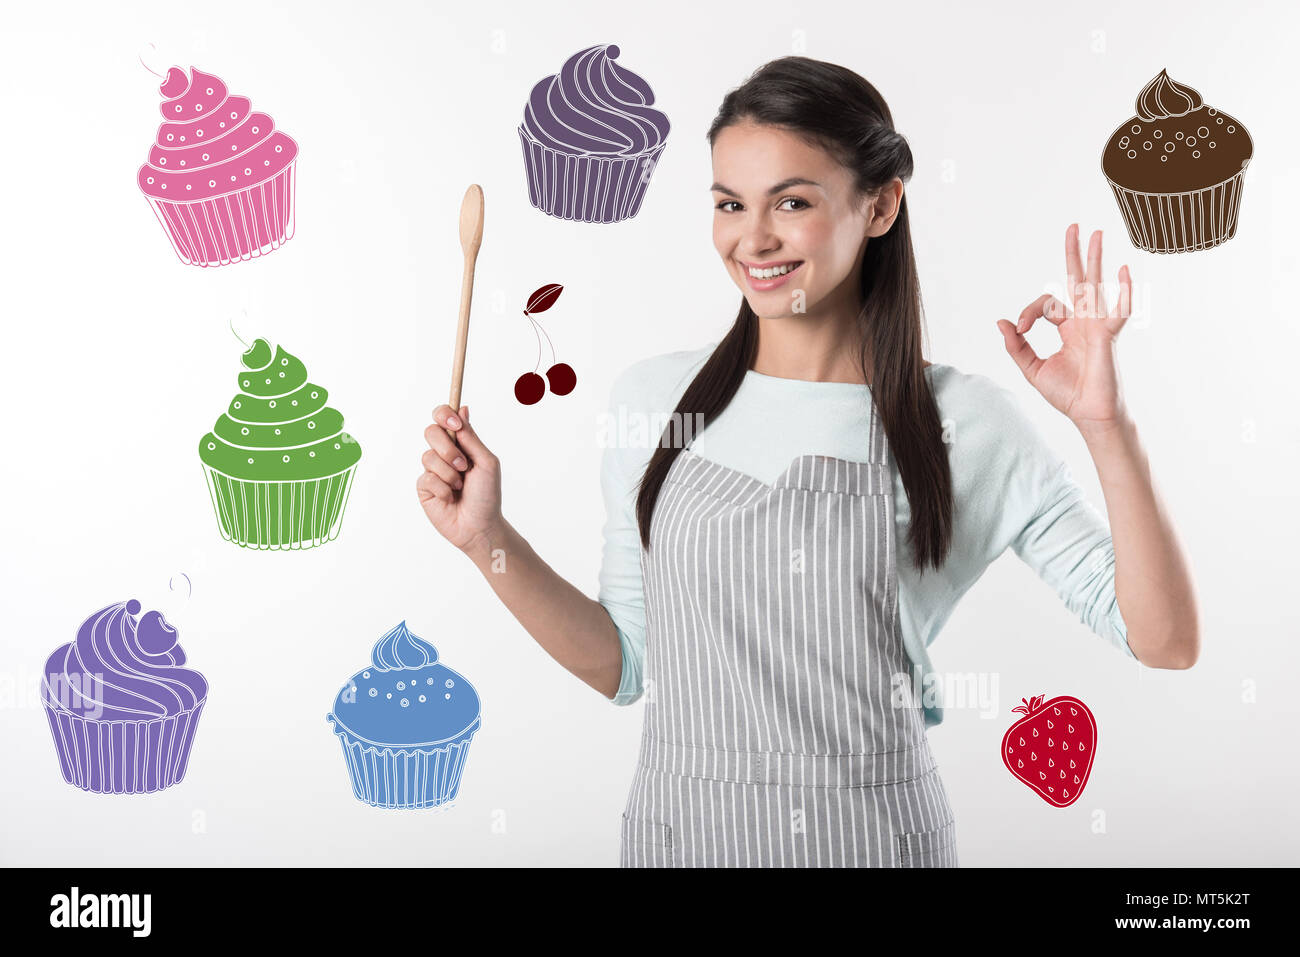 Happy cook holding a wooden spoon and looking confident - Stock Image